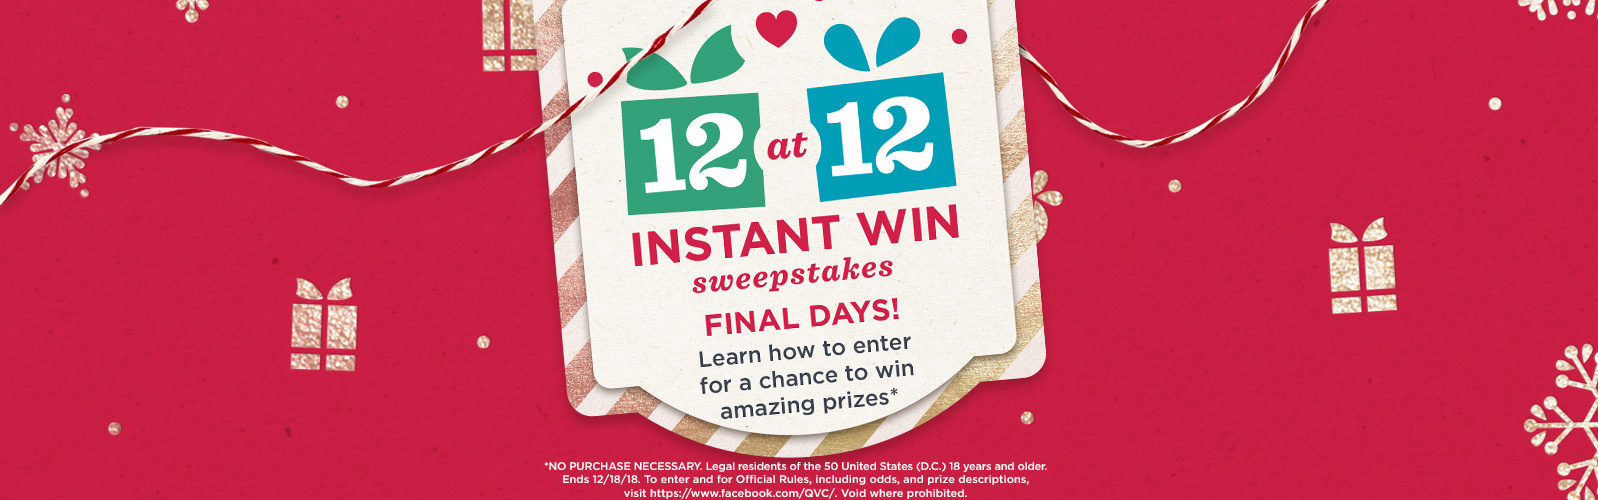 12 at 12 Instant Win Sweepstakes — Final days! Learn how to enter for a chance to win amazing prizes — NO PURCHASE NECESSARY. Legal residents of the 50 United States (D.C.) 18 years and older. Ends 12/18/18. To enter and for Official Rules, including odds, and prize descriptions, visit https://www.facebook.com/QVC/. Void where prohibited.